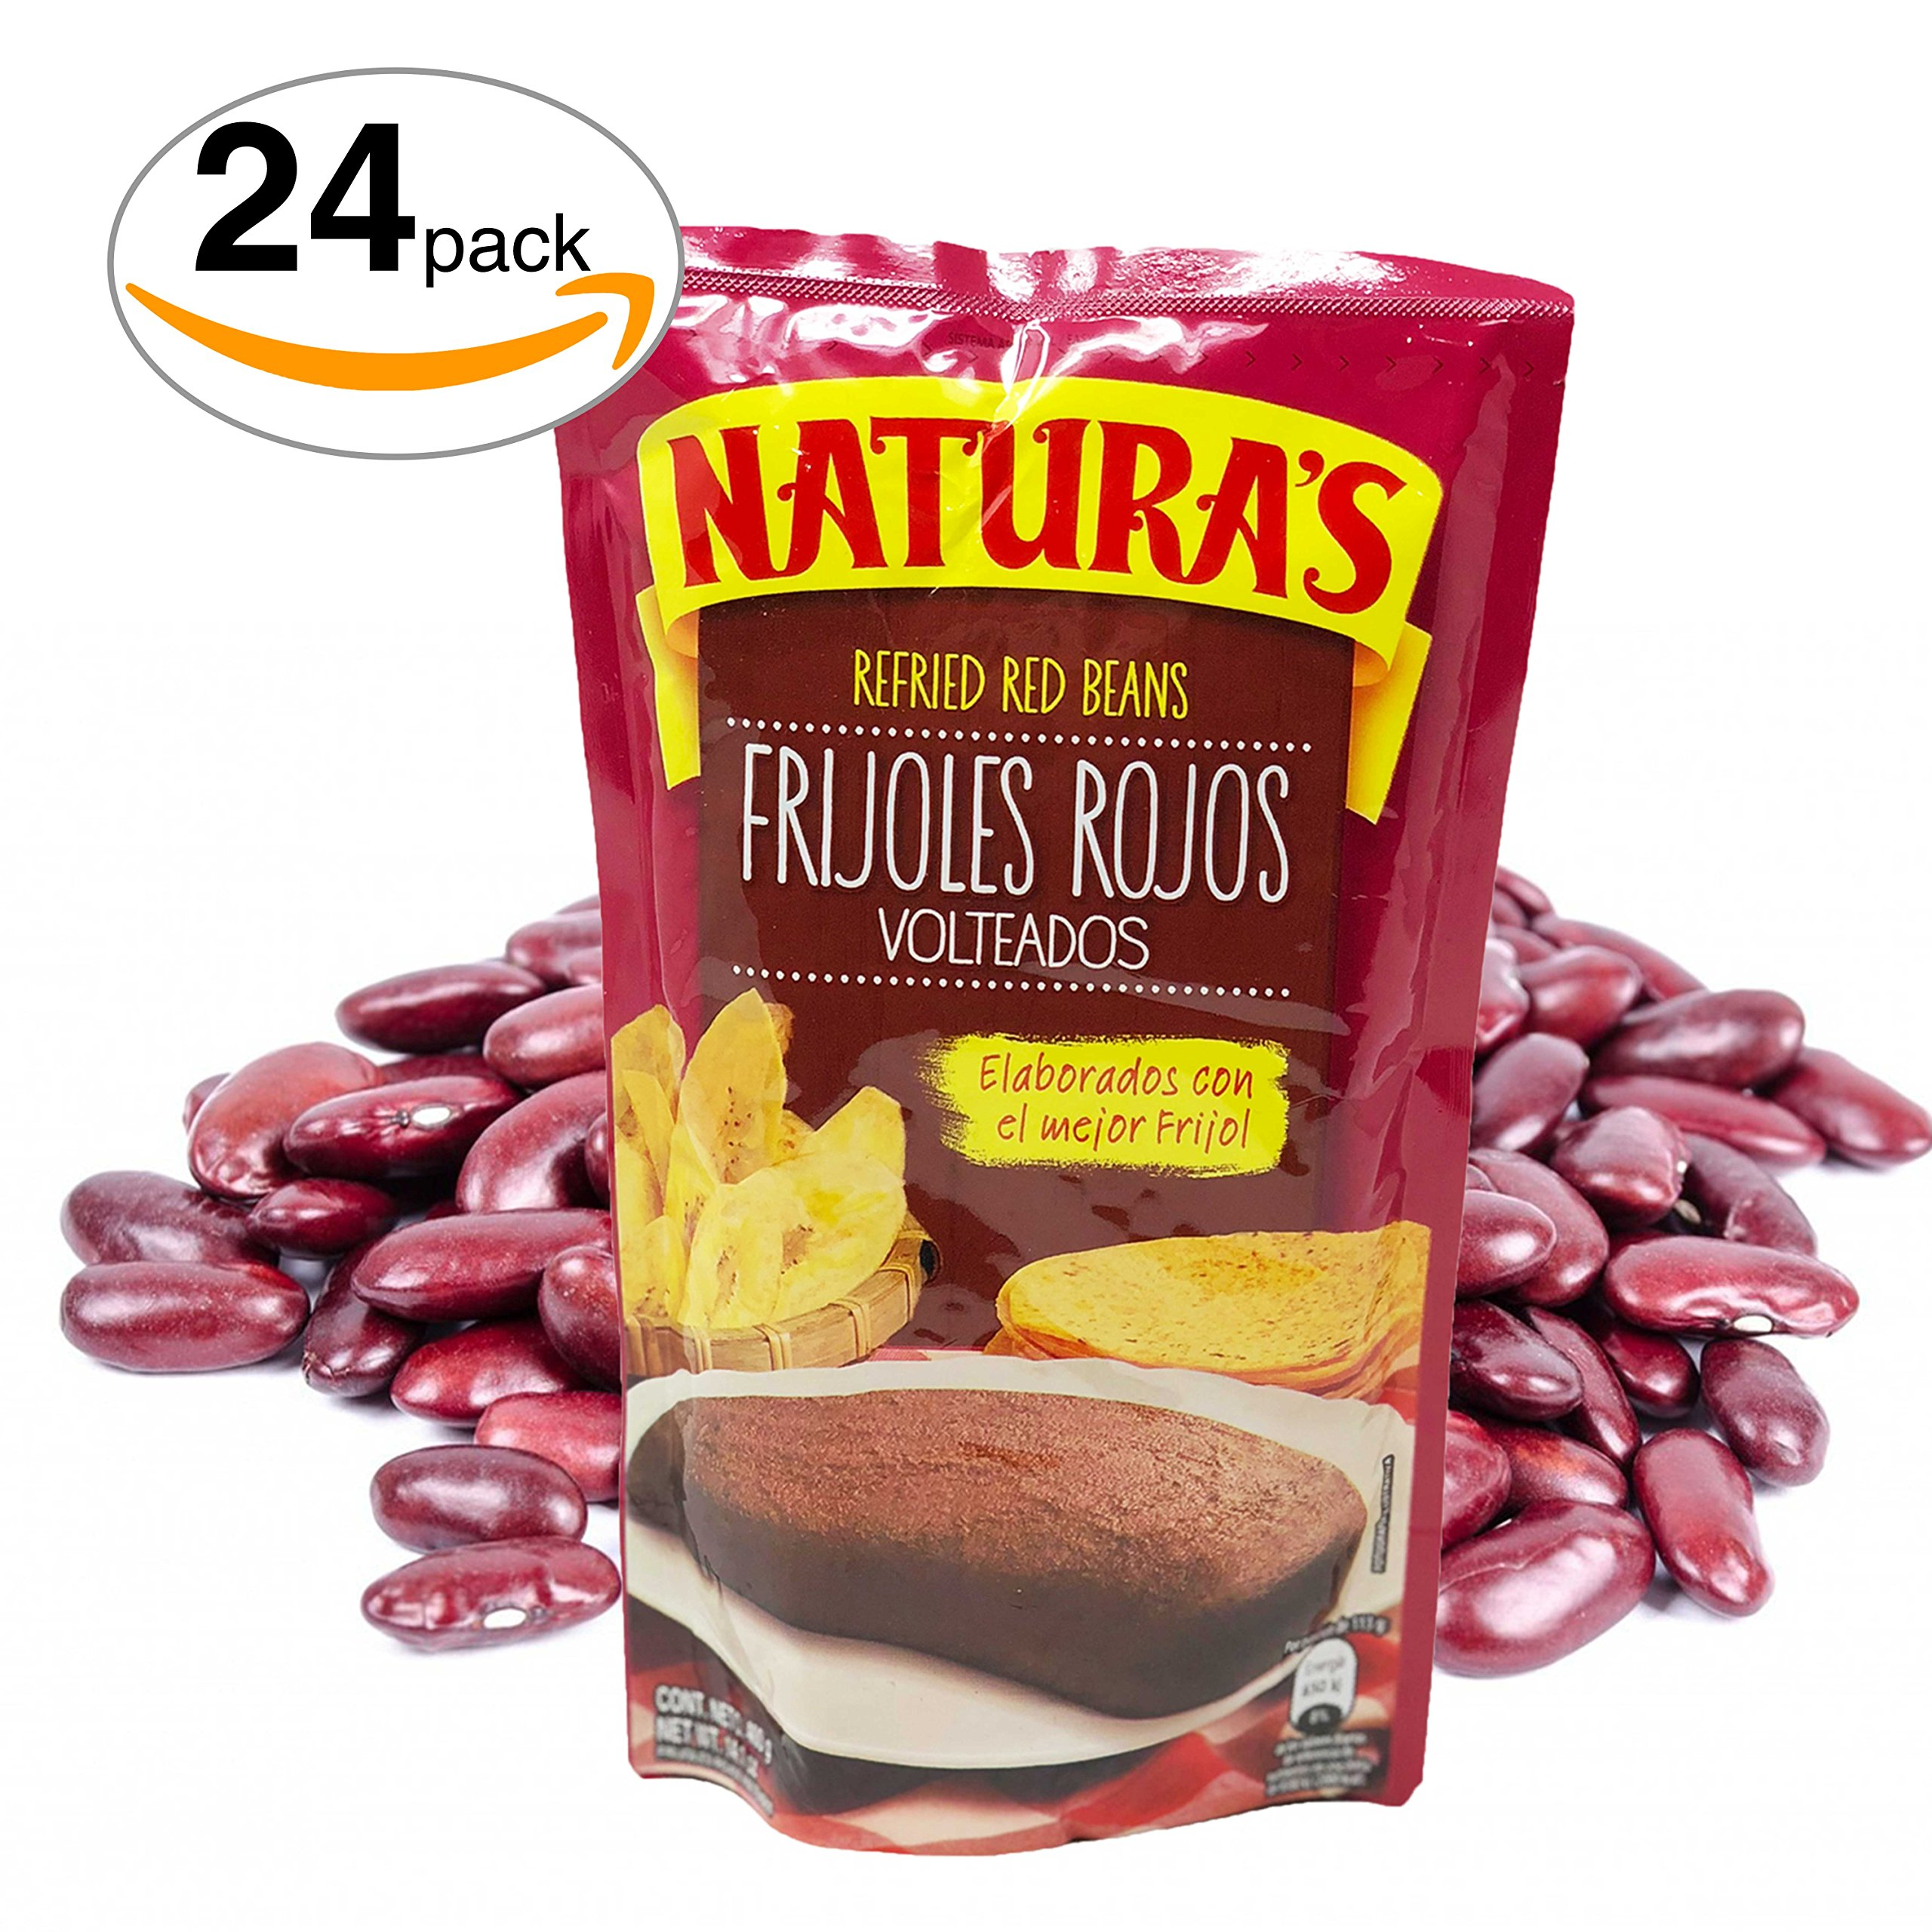 Naturas Refried Red Kidney Beans:Frijoles Rojos Volteados | 100% Plant Based | Ready To Serve| Made With Ground Beans of Beans|No Preservative,No Artificial Colors|100% Natural (227g,8oz) 24pack by NATURA'S